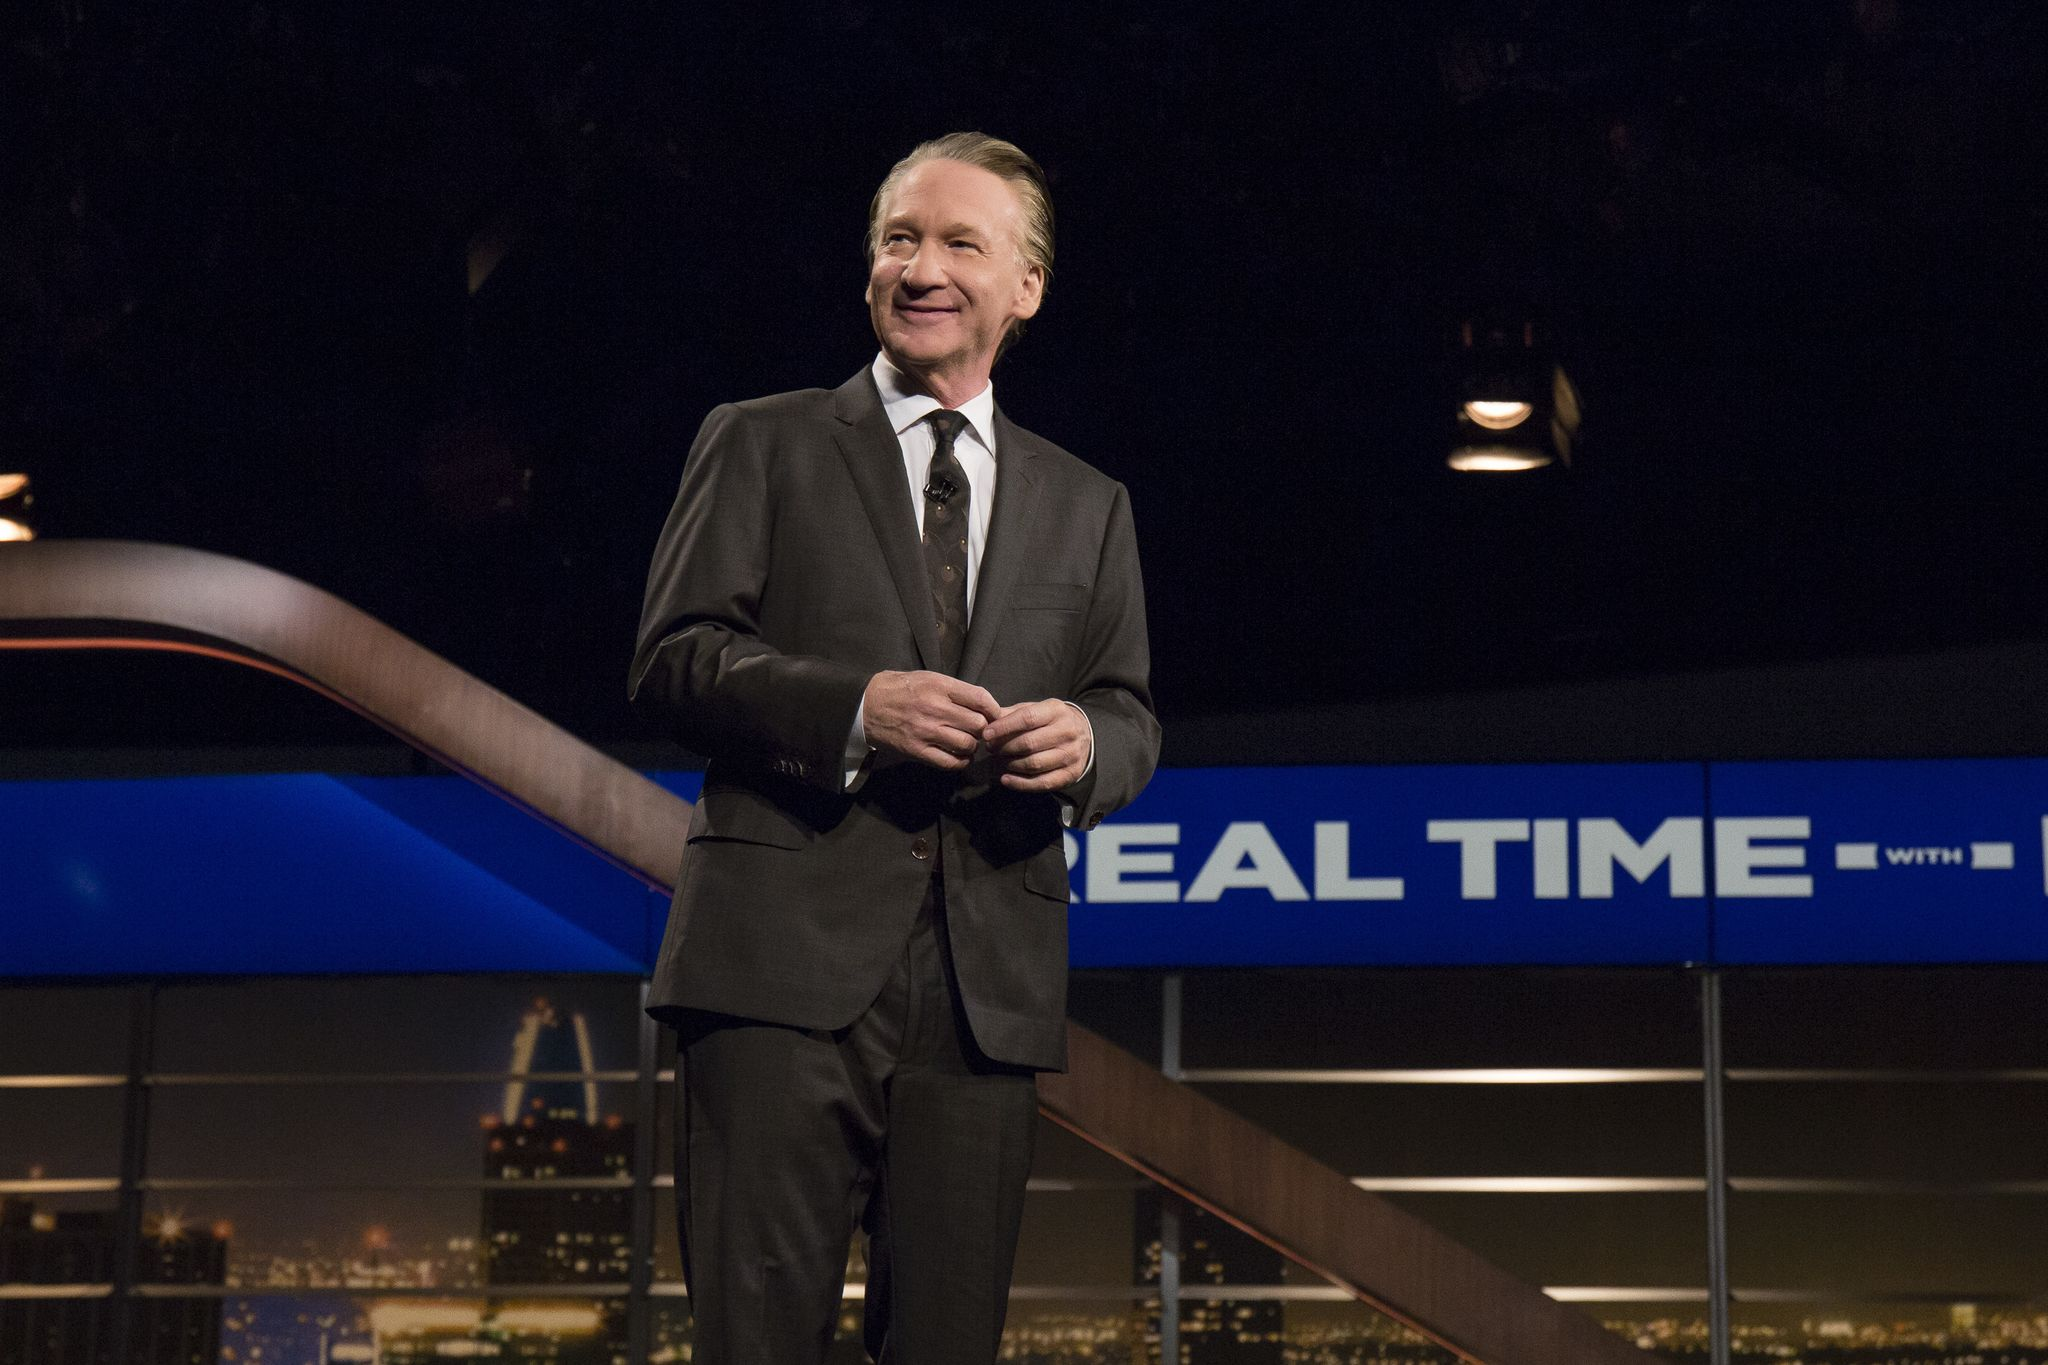 Bill Maher laments Dems 'killing their own,' defends Bernie Sanders camp amid harassment claims